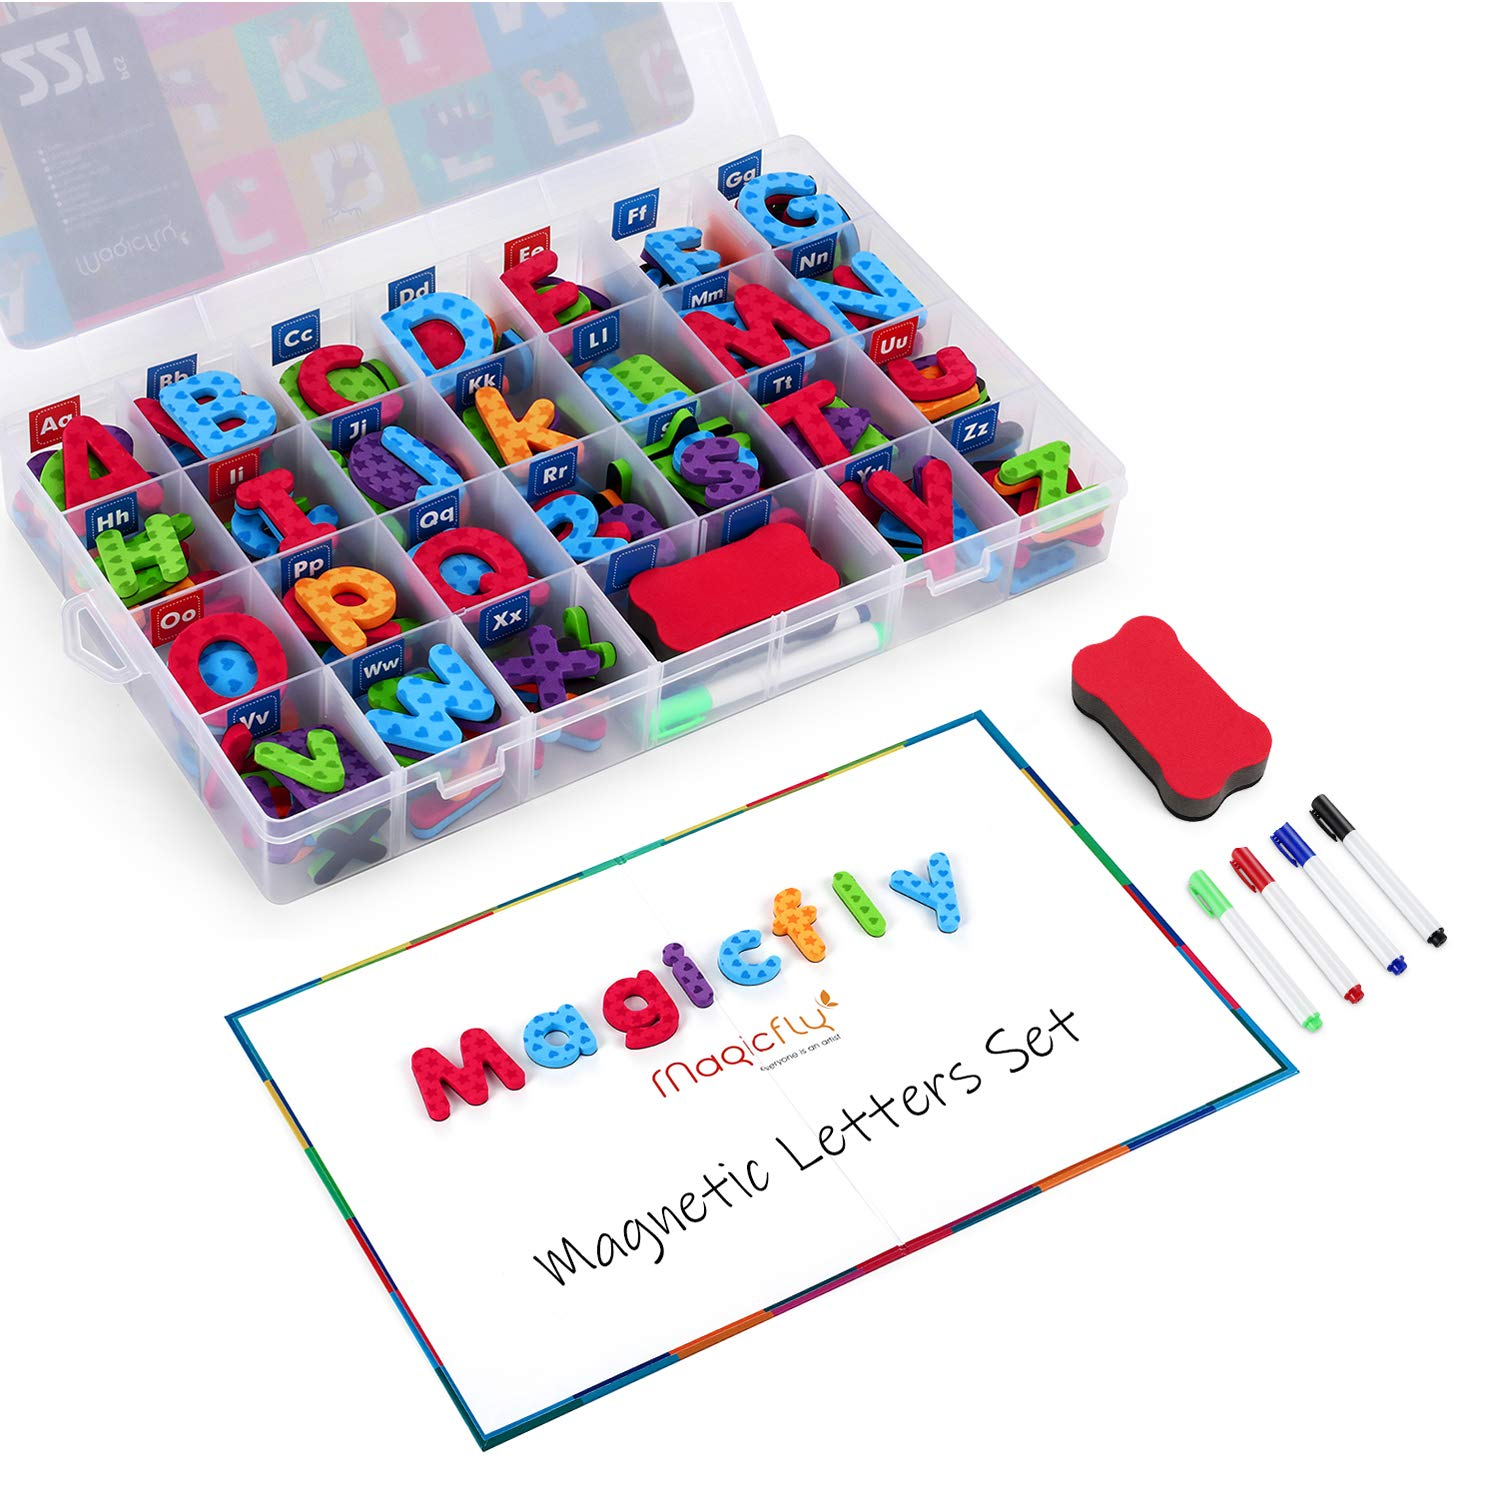 Magicfly 221 Pcs Alphabet Magnets with Foldable Magnet Board & Storage Box, Magnetic Alphabet Letters & Numbers with Double Sides Dry Erase Board for Kids Spelling & Learning by Magicfly